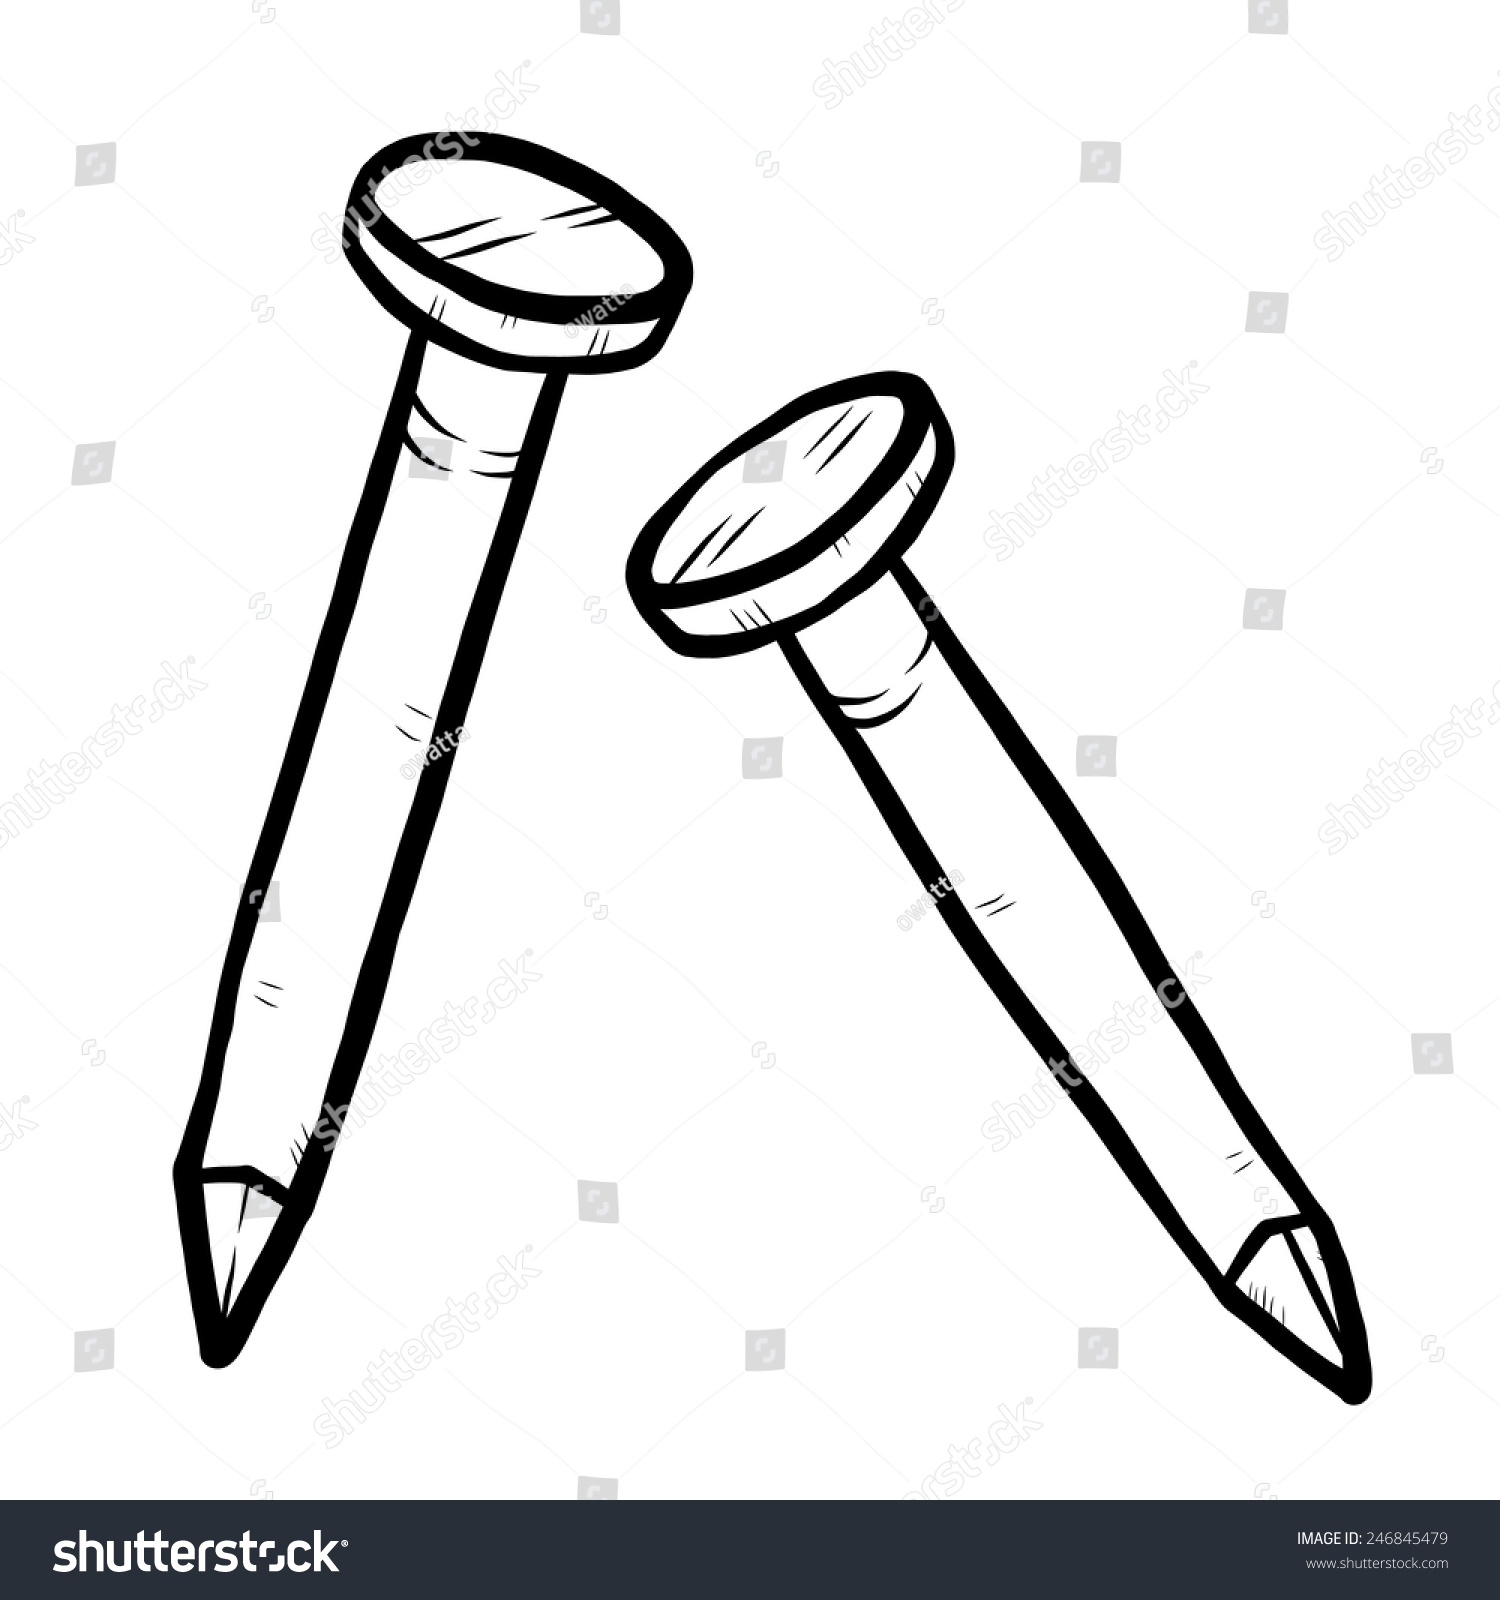 Two Nail Cartoon Vector And Illustration Black White Hand Drawn Sketch